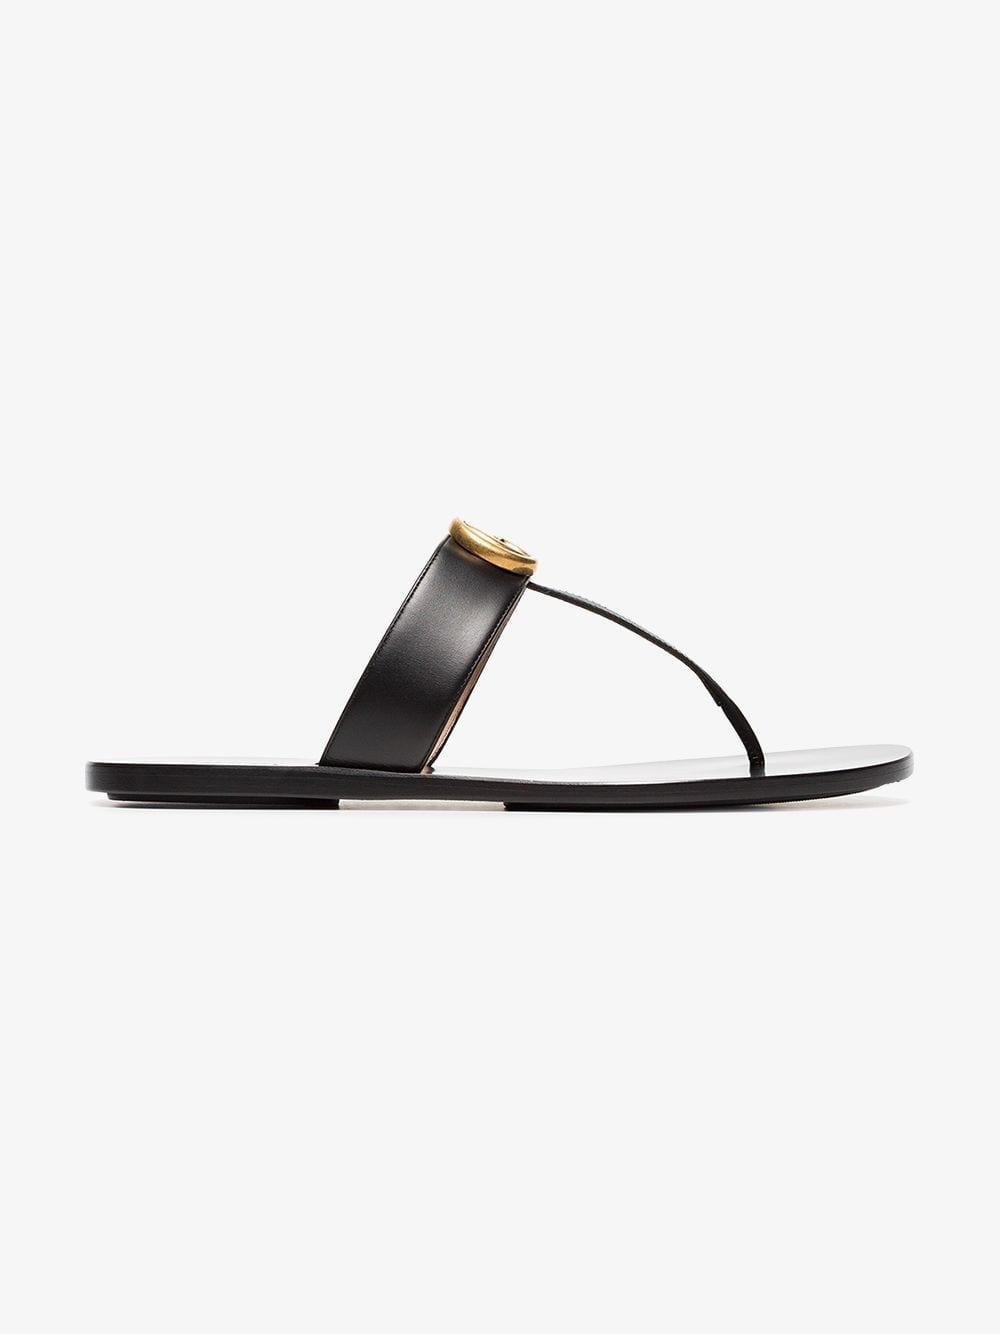 3c7f8d8e9 Lyst - Gucci Black Double G Leather Thong Sandals in Black - Save 13%